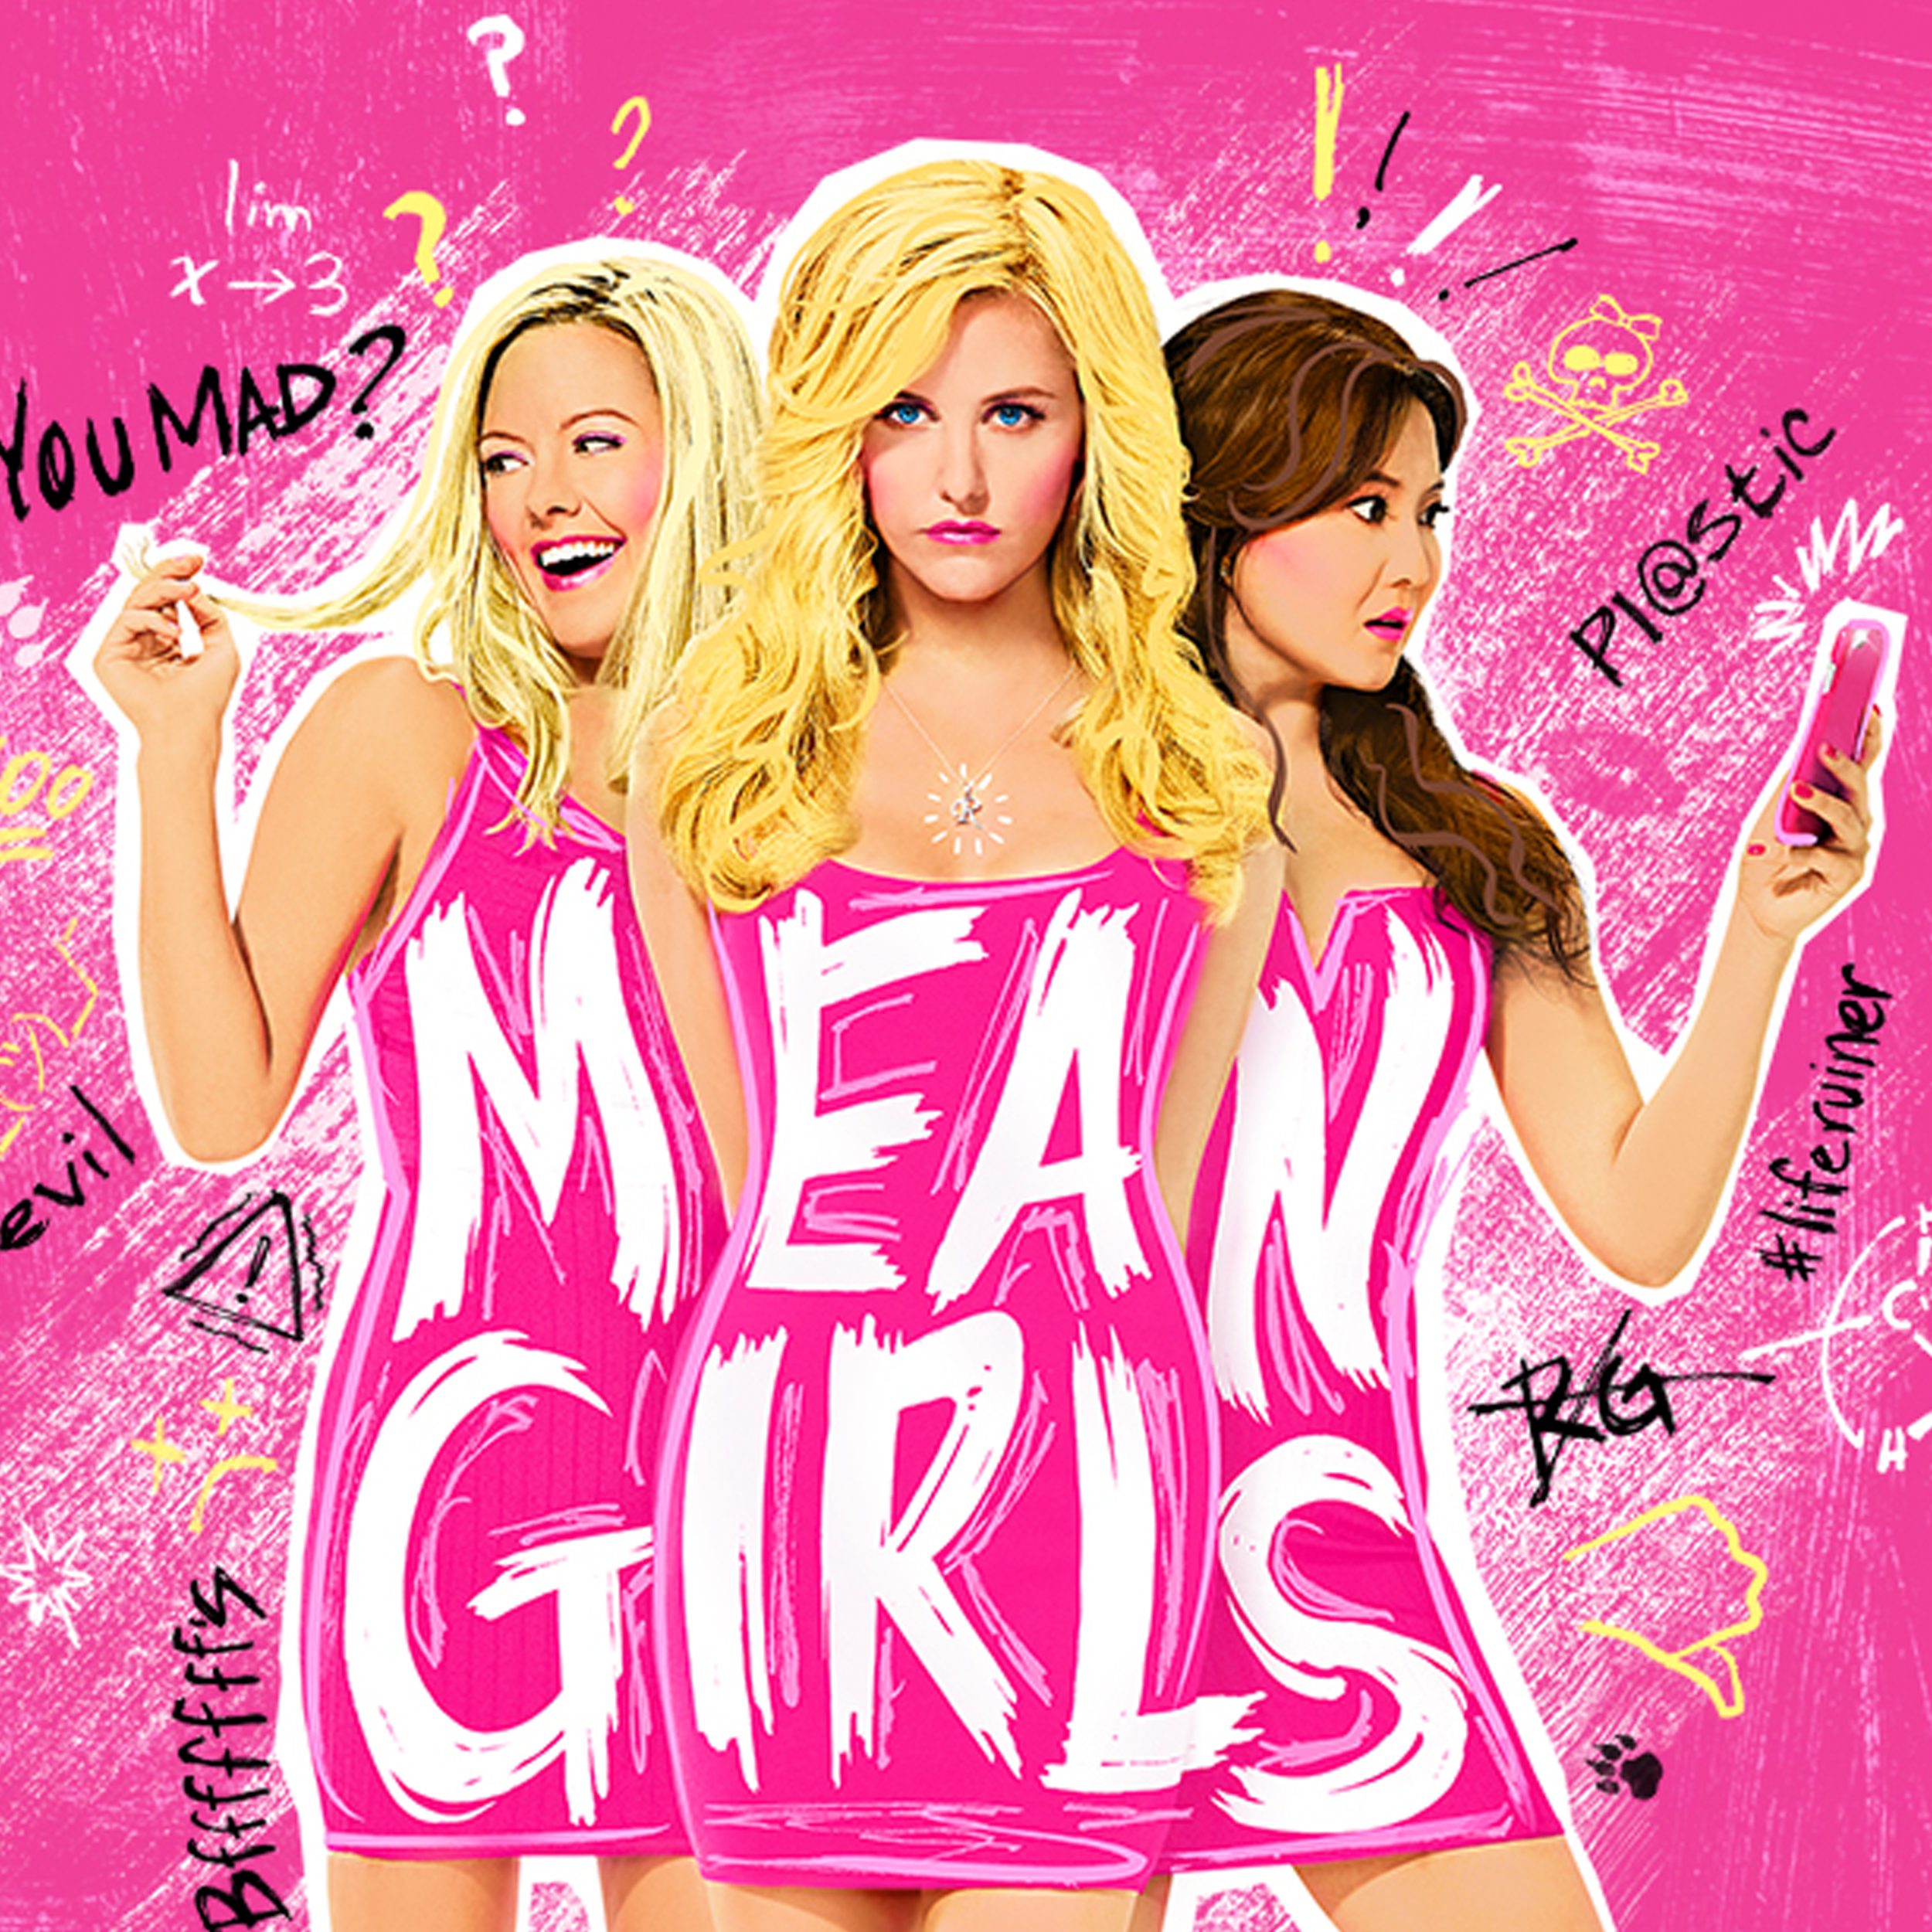 Broadway's Mean Girls with Backstage Tour - Enjoy two house seats for the smash hit musical Mean Girls. After the show, join performer Gianna Yanelli backstage for a tour and see how the magic happens!